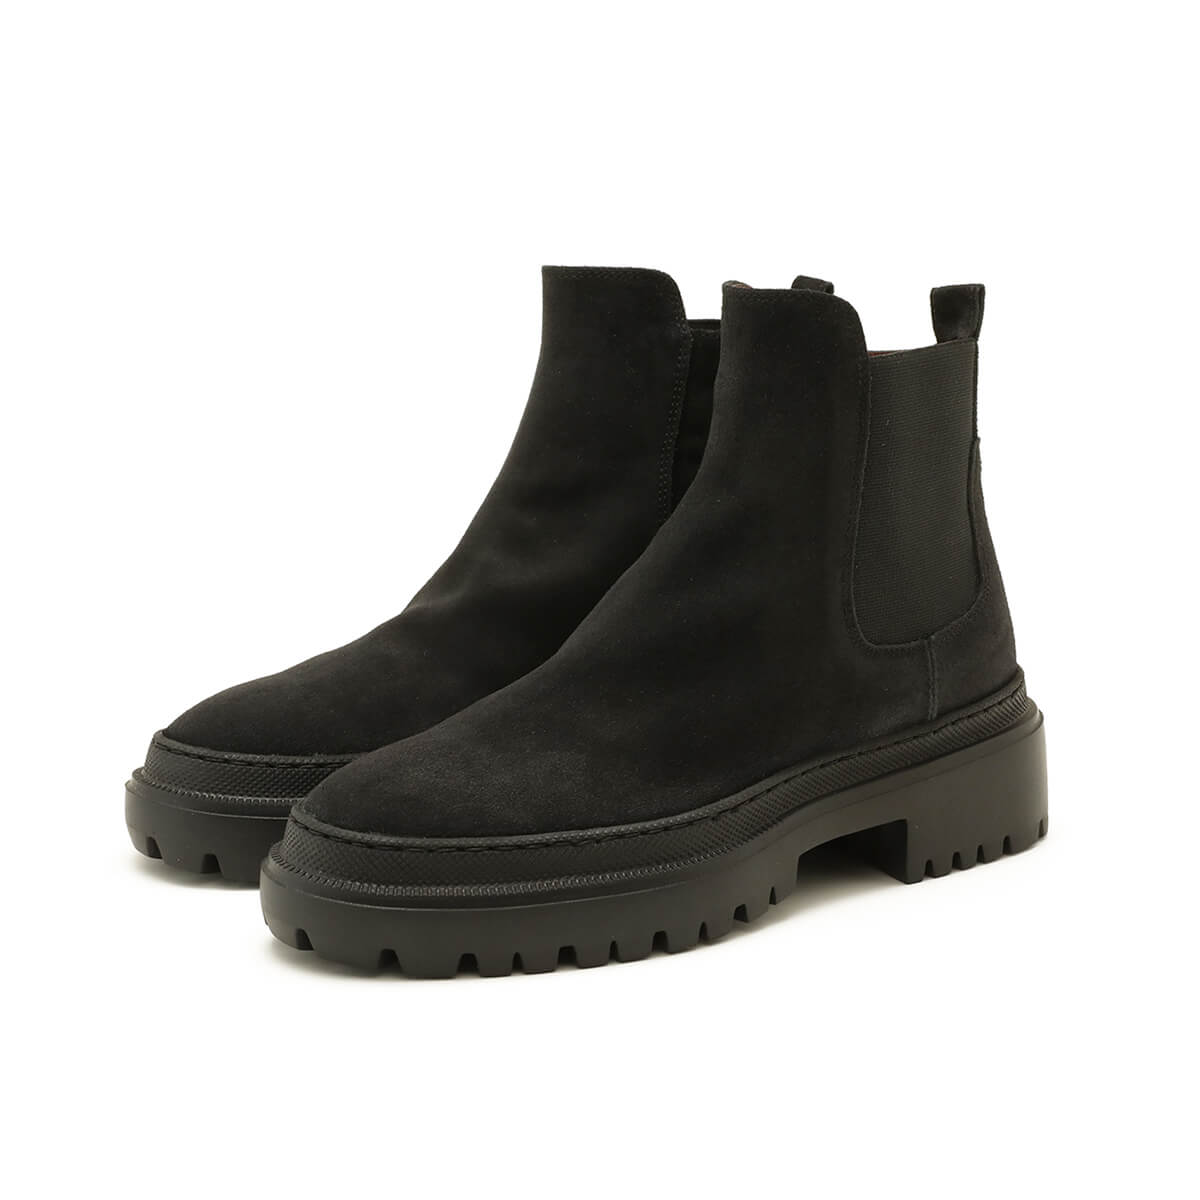 Chunky Beatles Boots, black suede